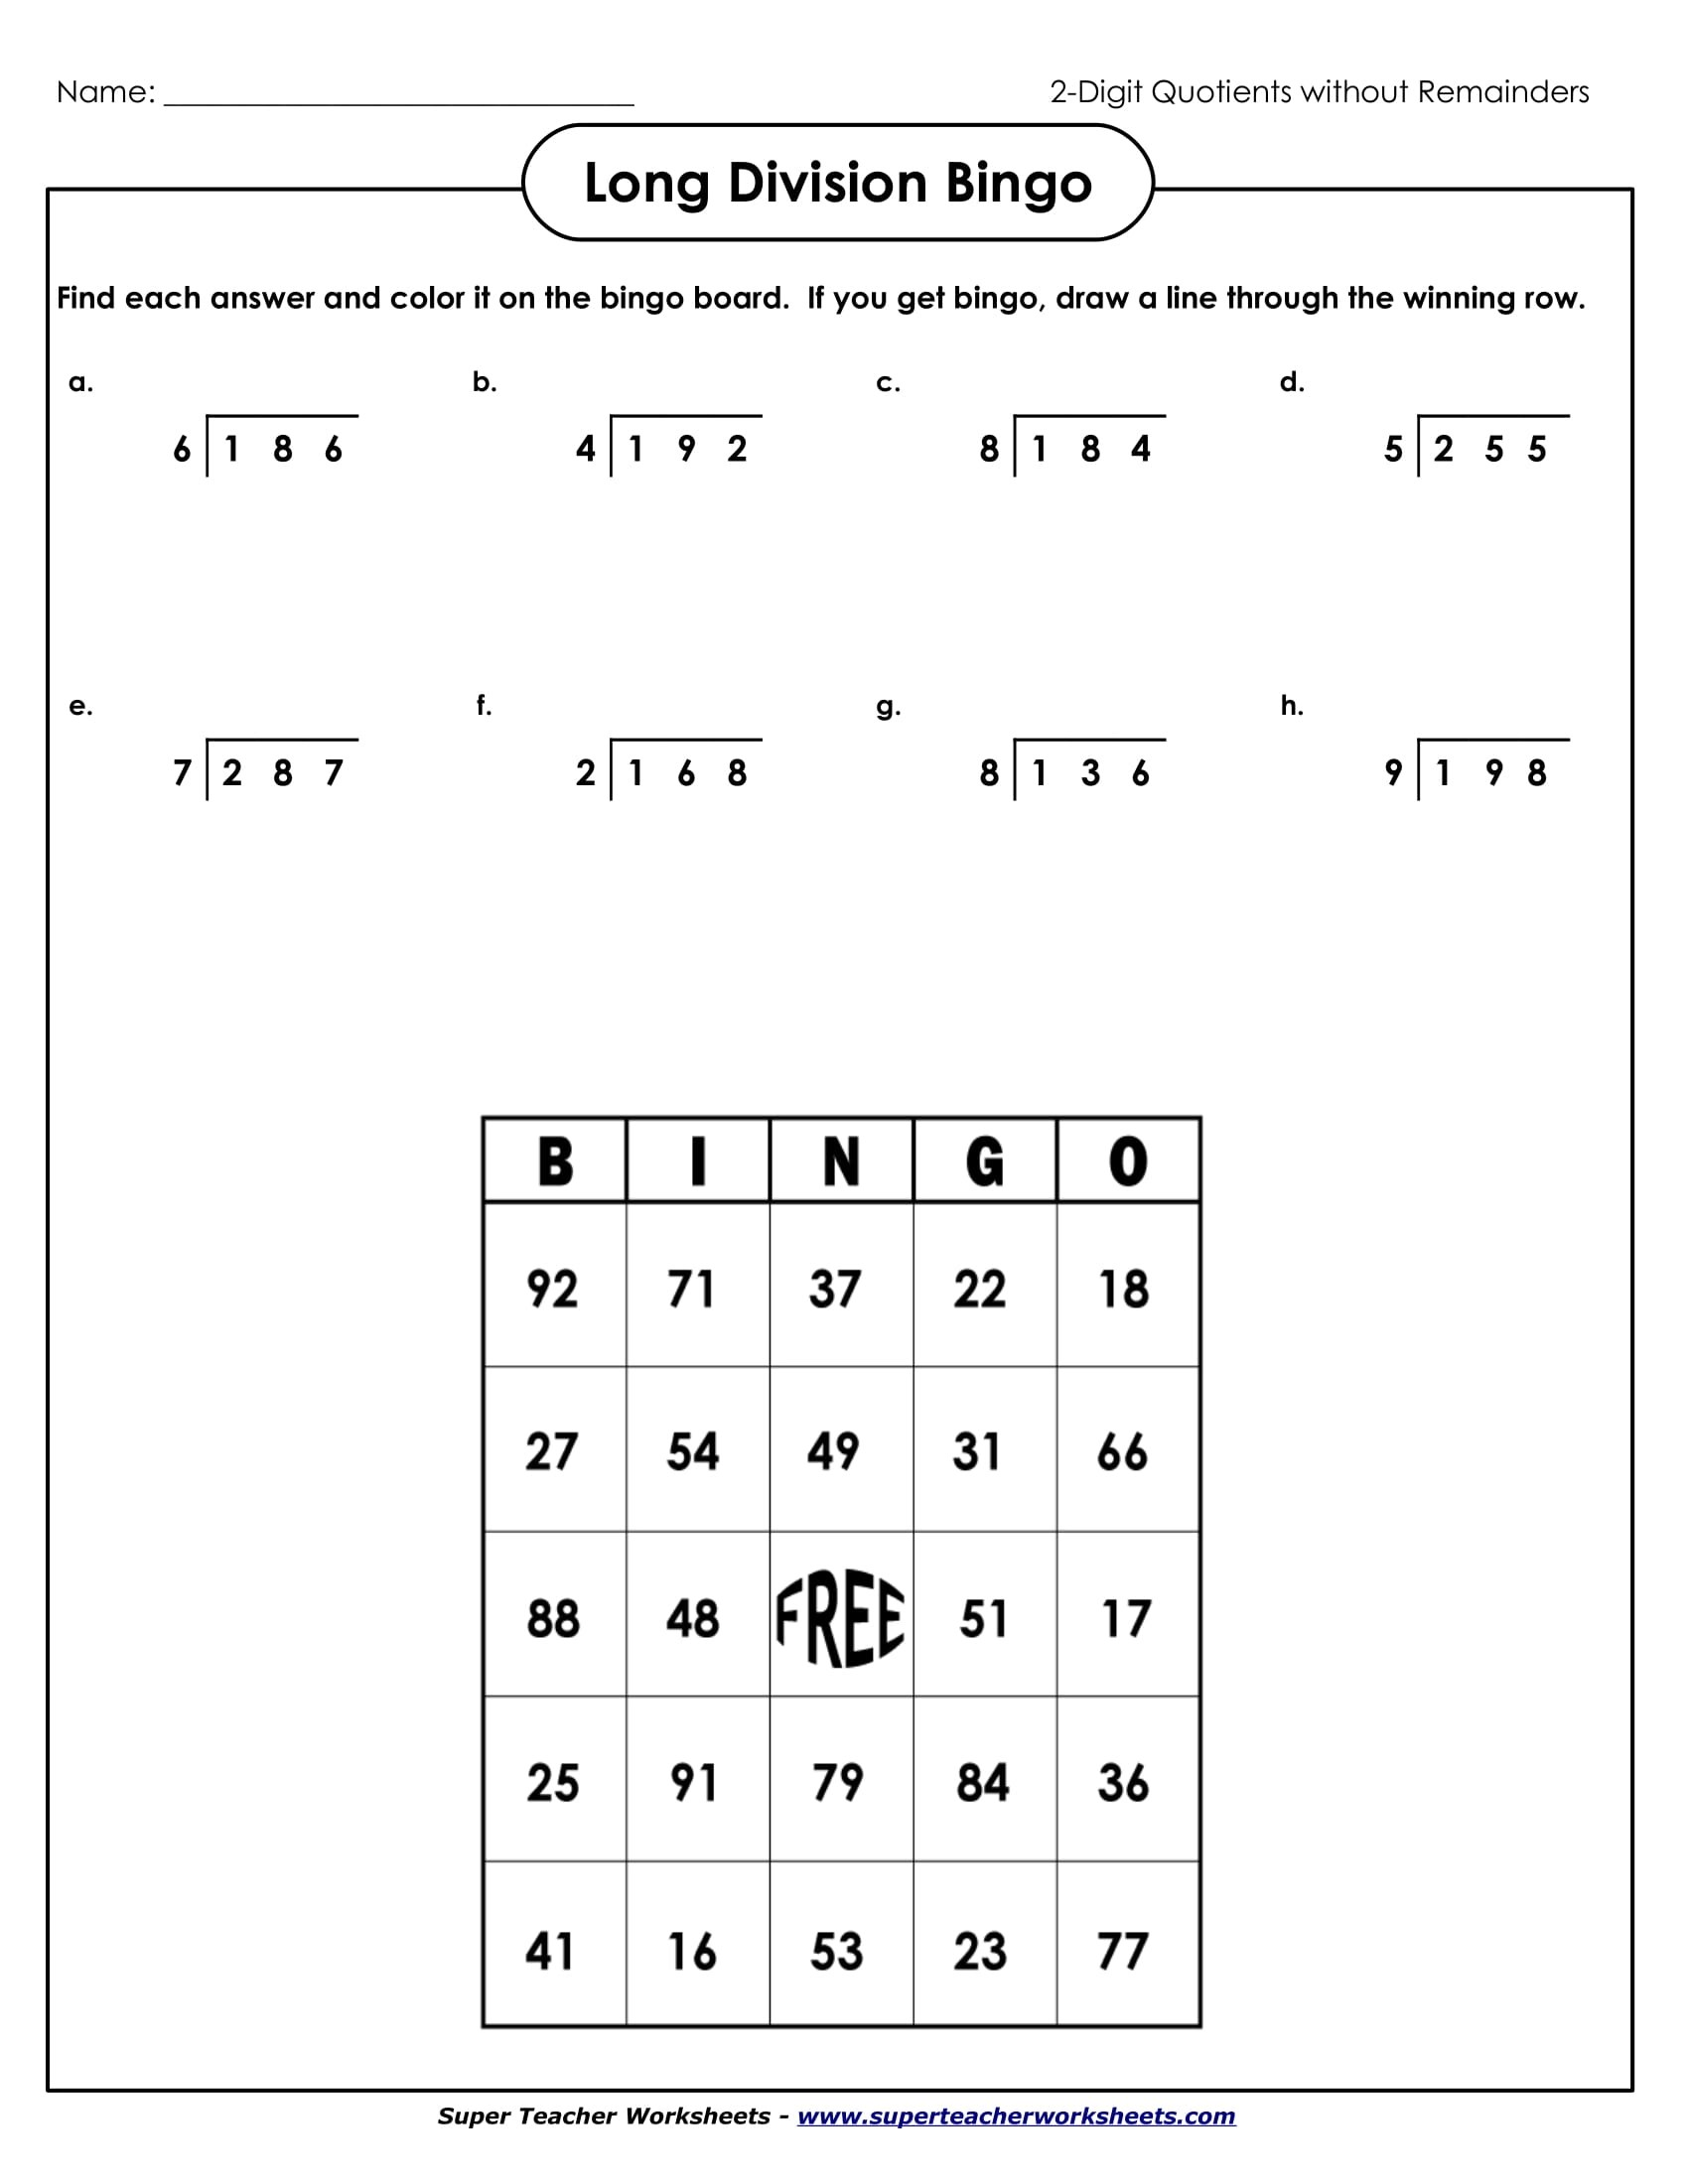 Printables Of Long Division Bingo Worksheet